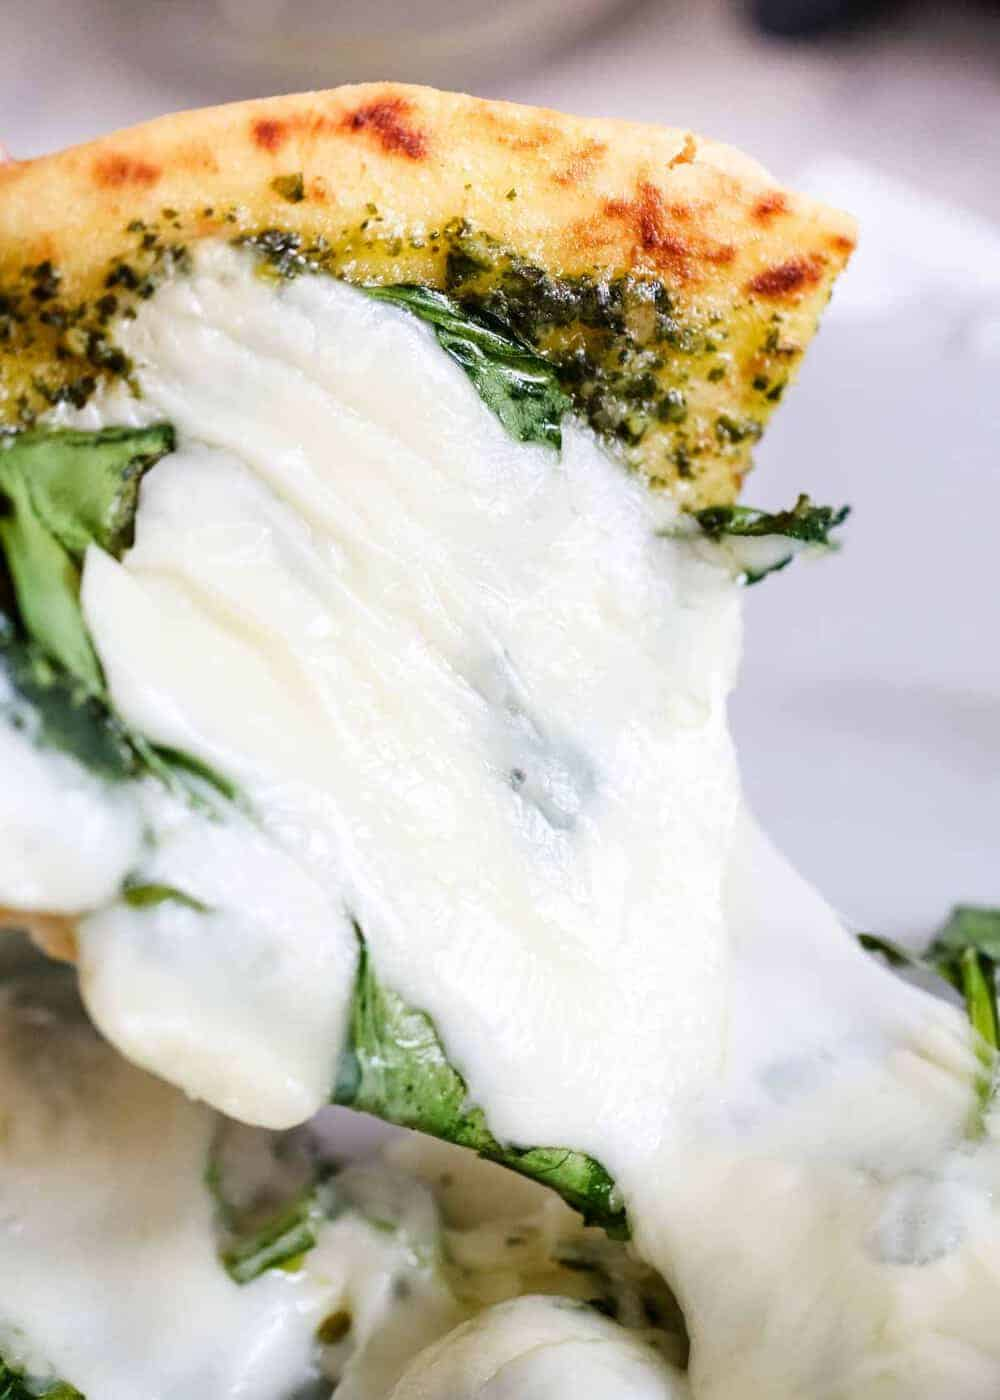 Easy Spinach Pesto Pizza 4 Ingredients 10 Mins I Heart Naptime